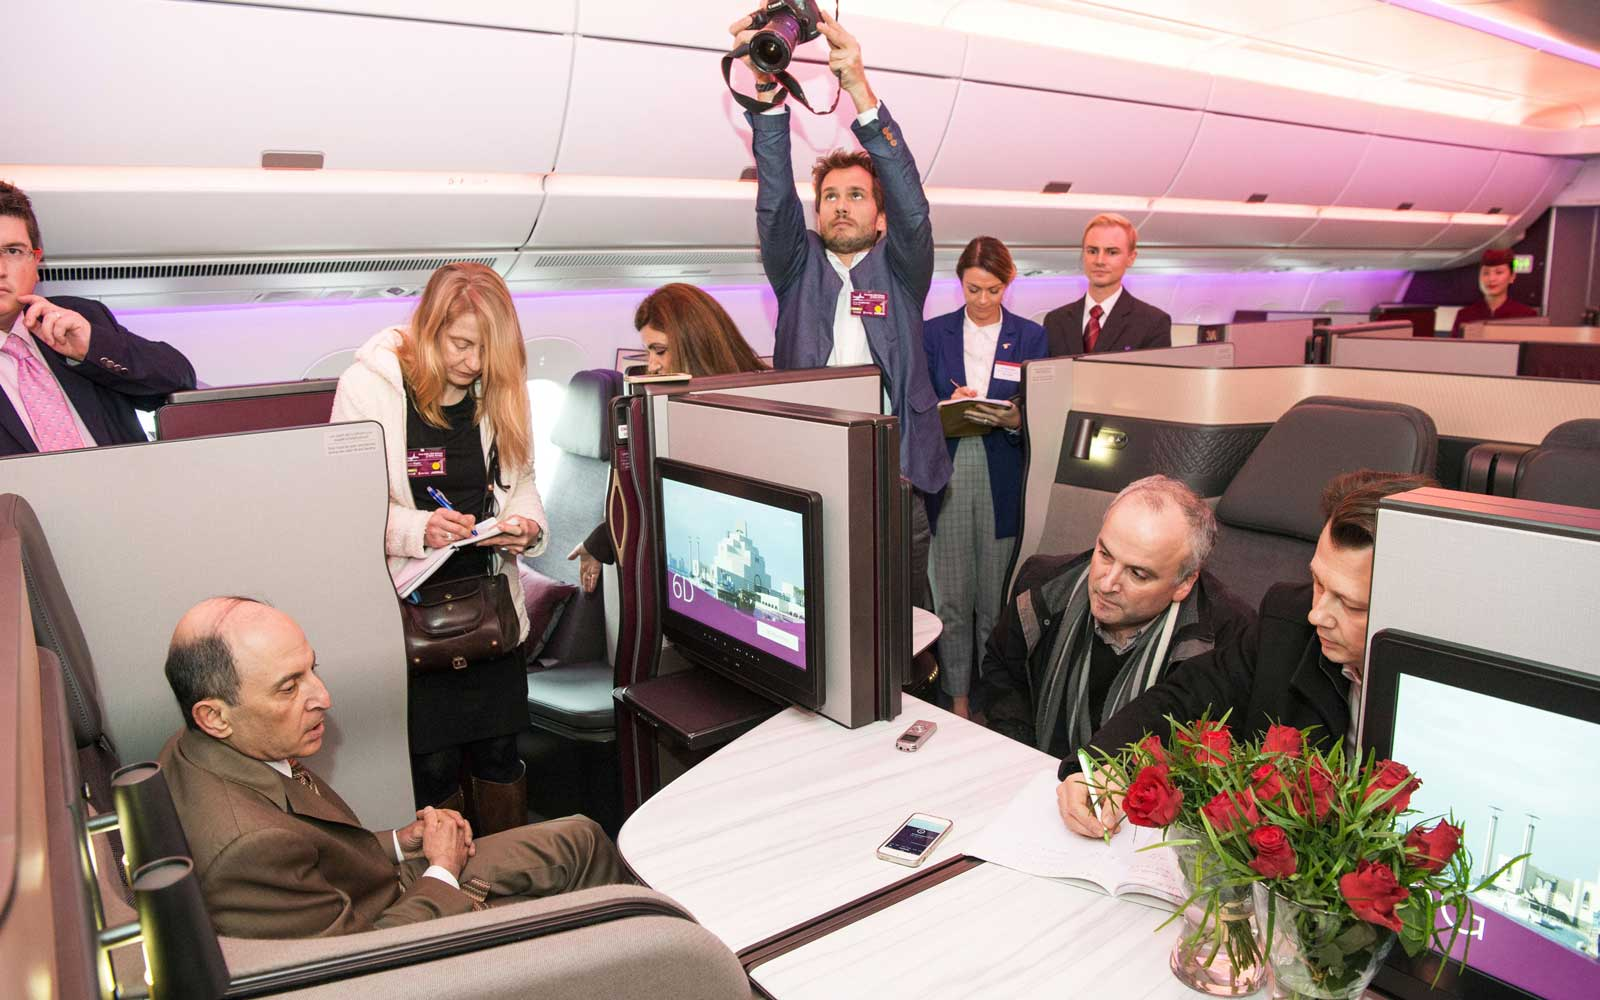 Inside the first class cabin at the launch of the Qatar Airlines Airbus A350-1000